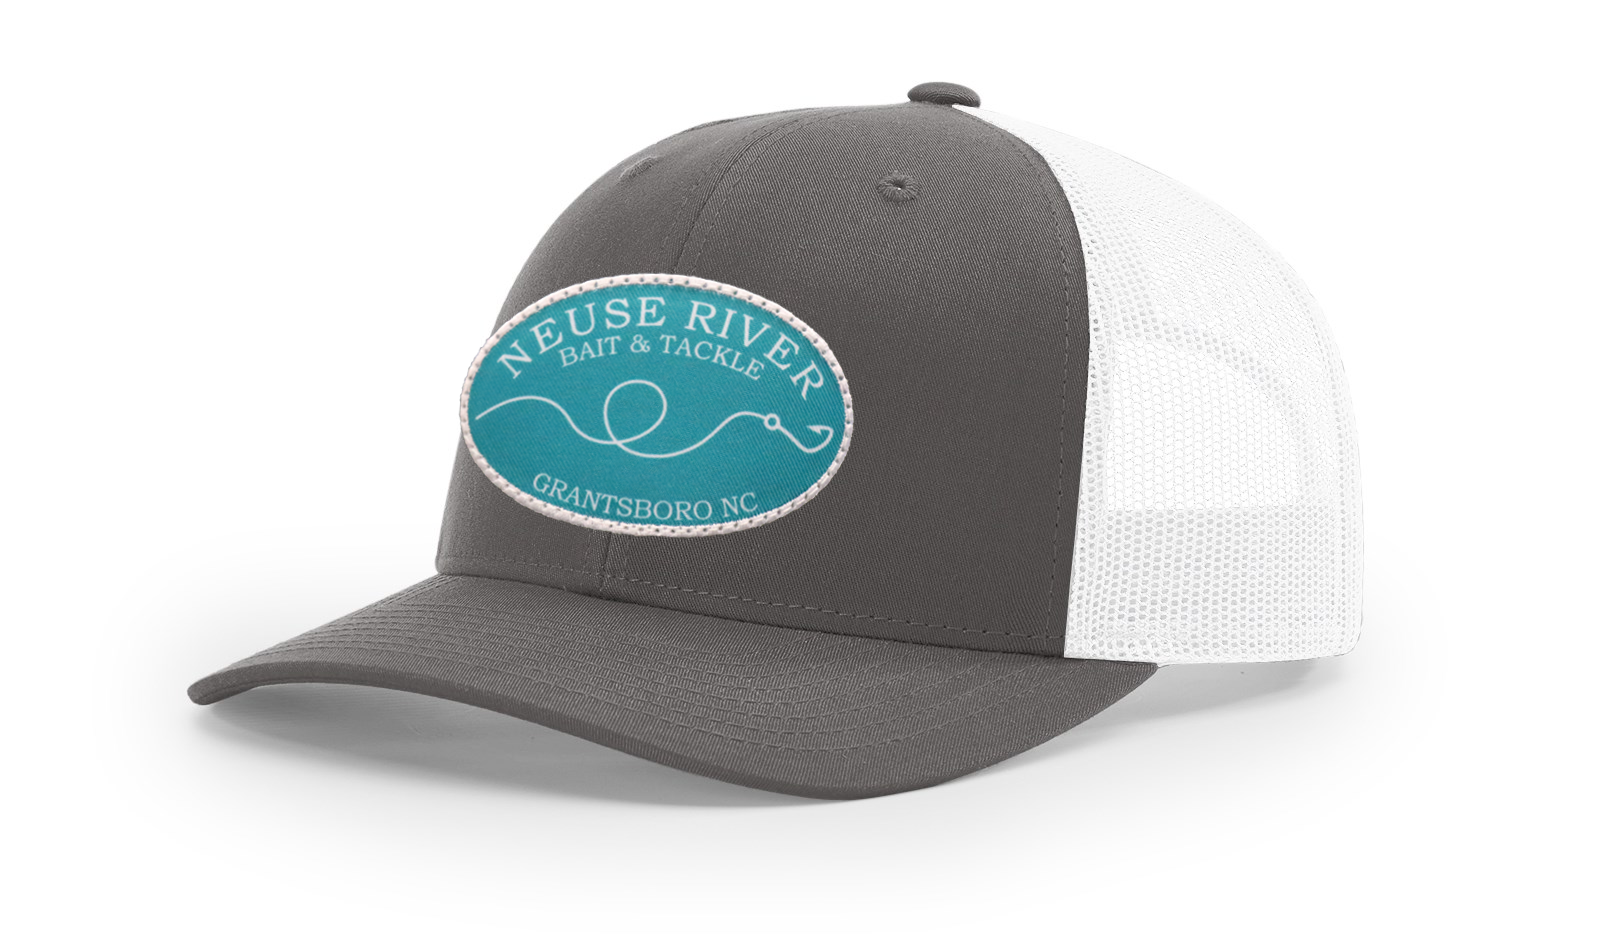 Hook & Line Patch Trucker Hat